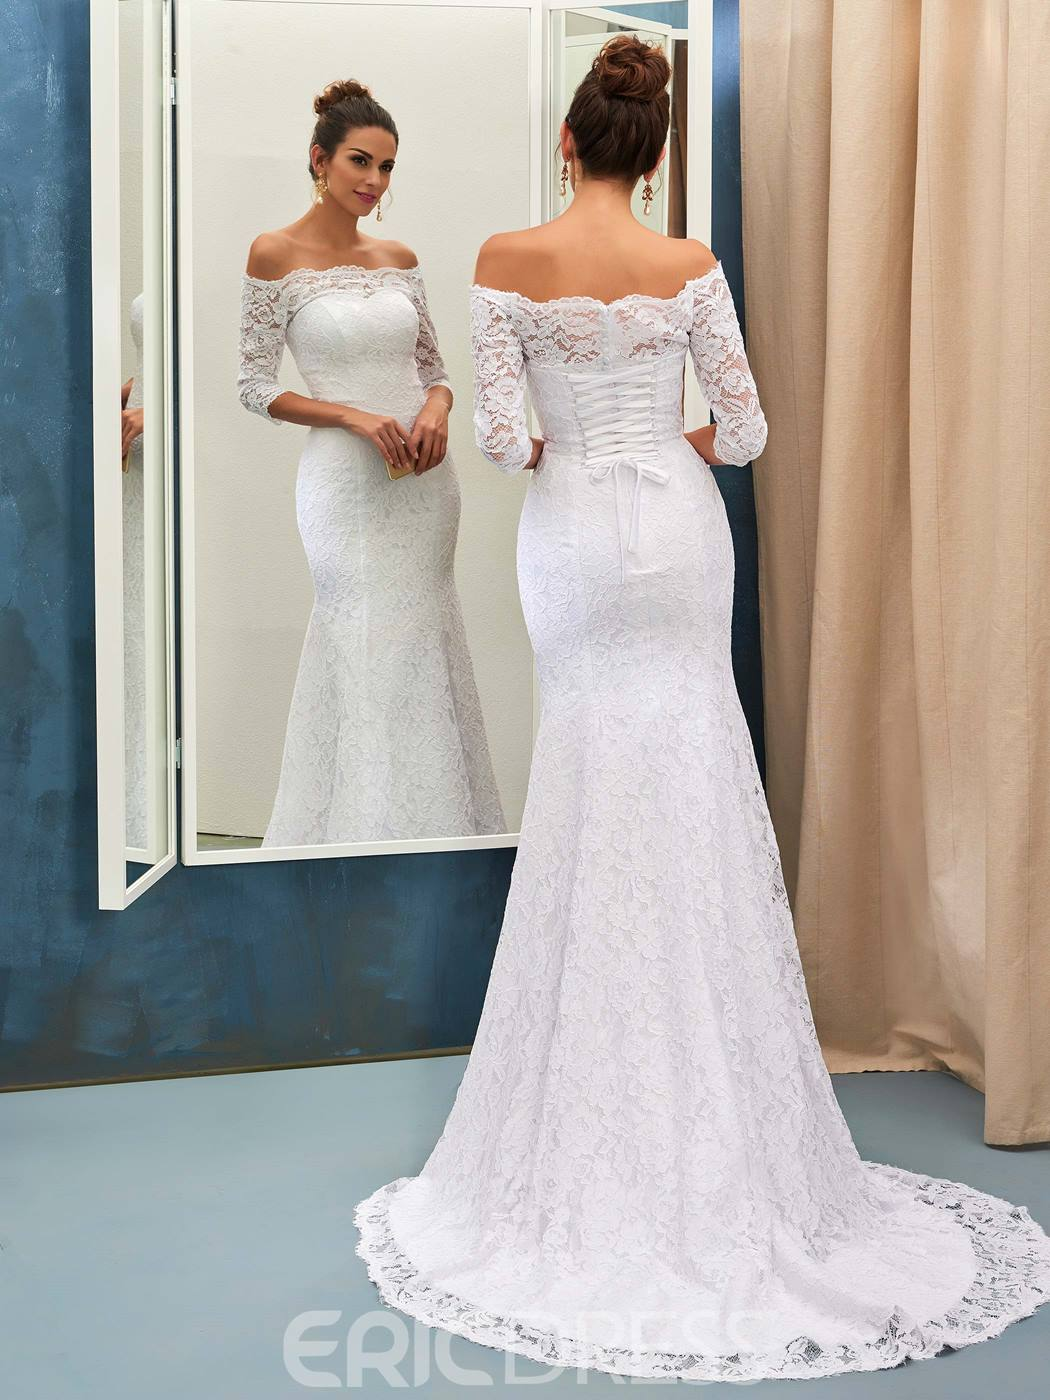 Ericdress Lace Mermaid Off The Shoulder Wedding Dress With Sleeves ...